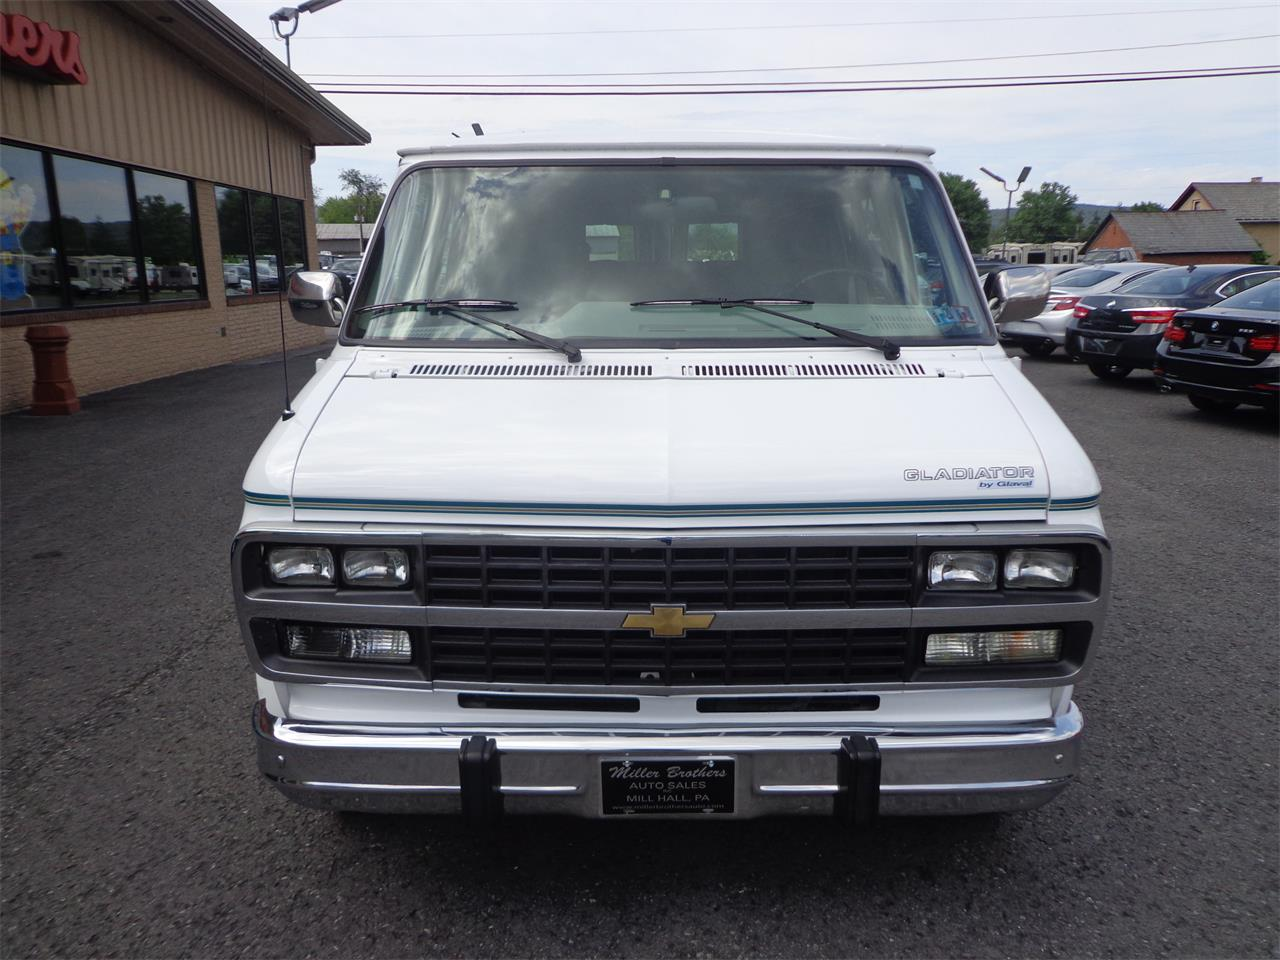 1995 Chevrolet G20 for sale in Mill Hall, PA – photo 2